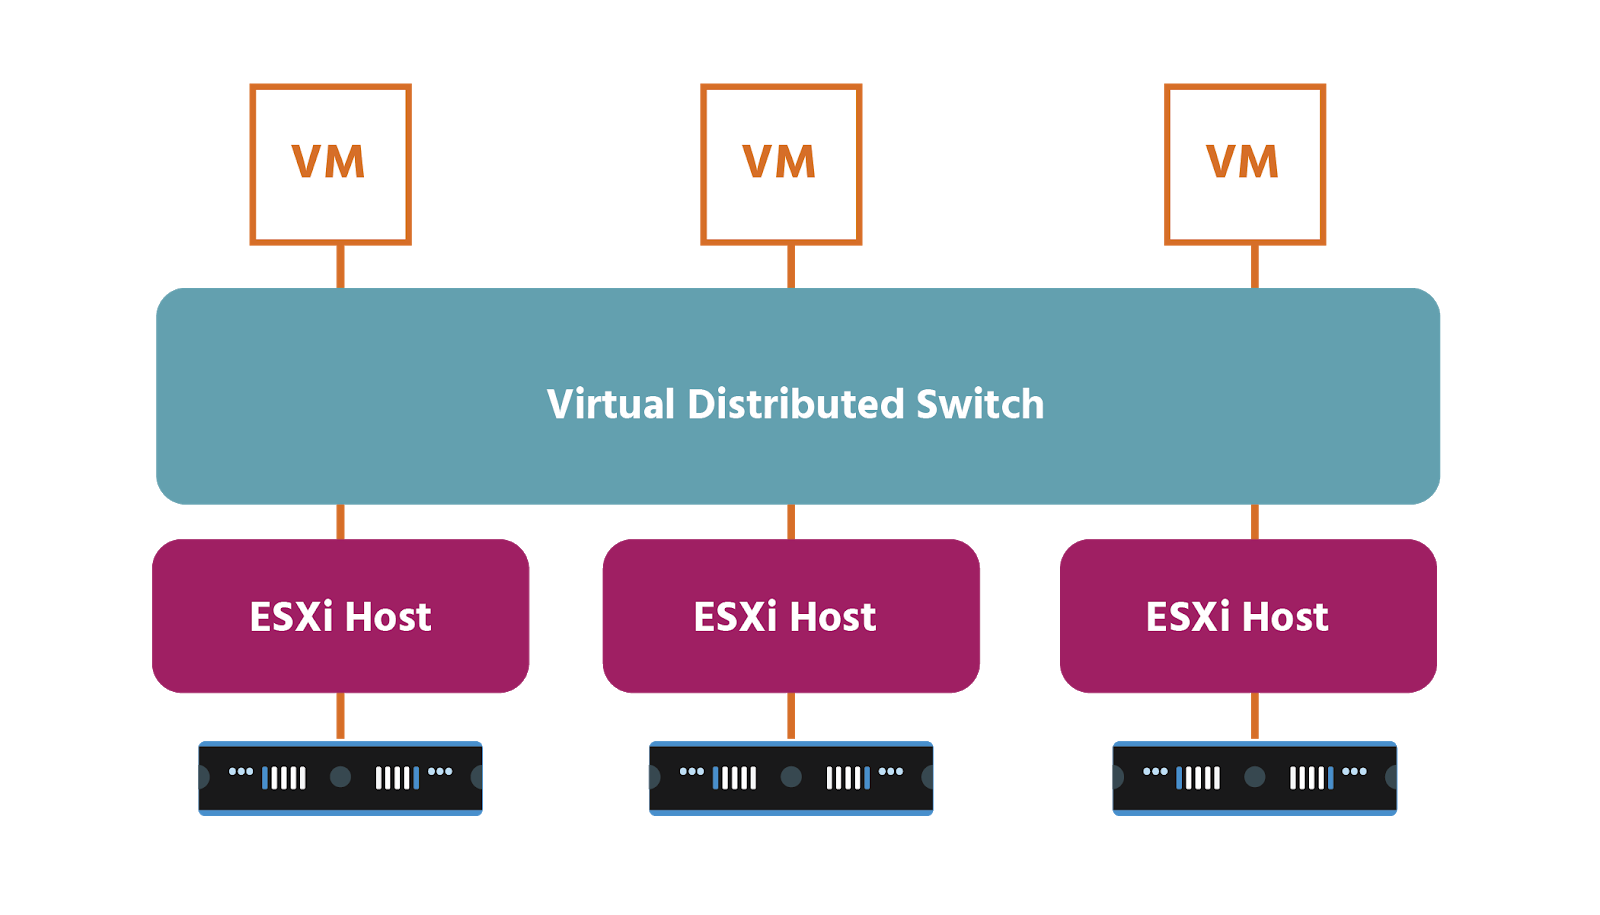 Three VMs above three ESXi hosts and three servers; one virtual distributed switch is between the VMs and ESXi hosts